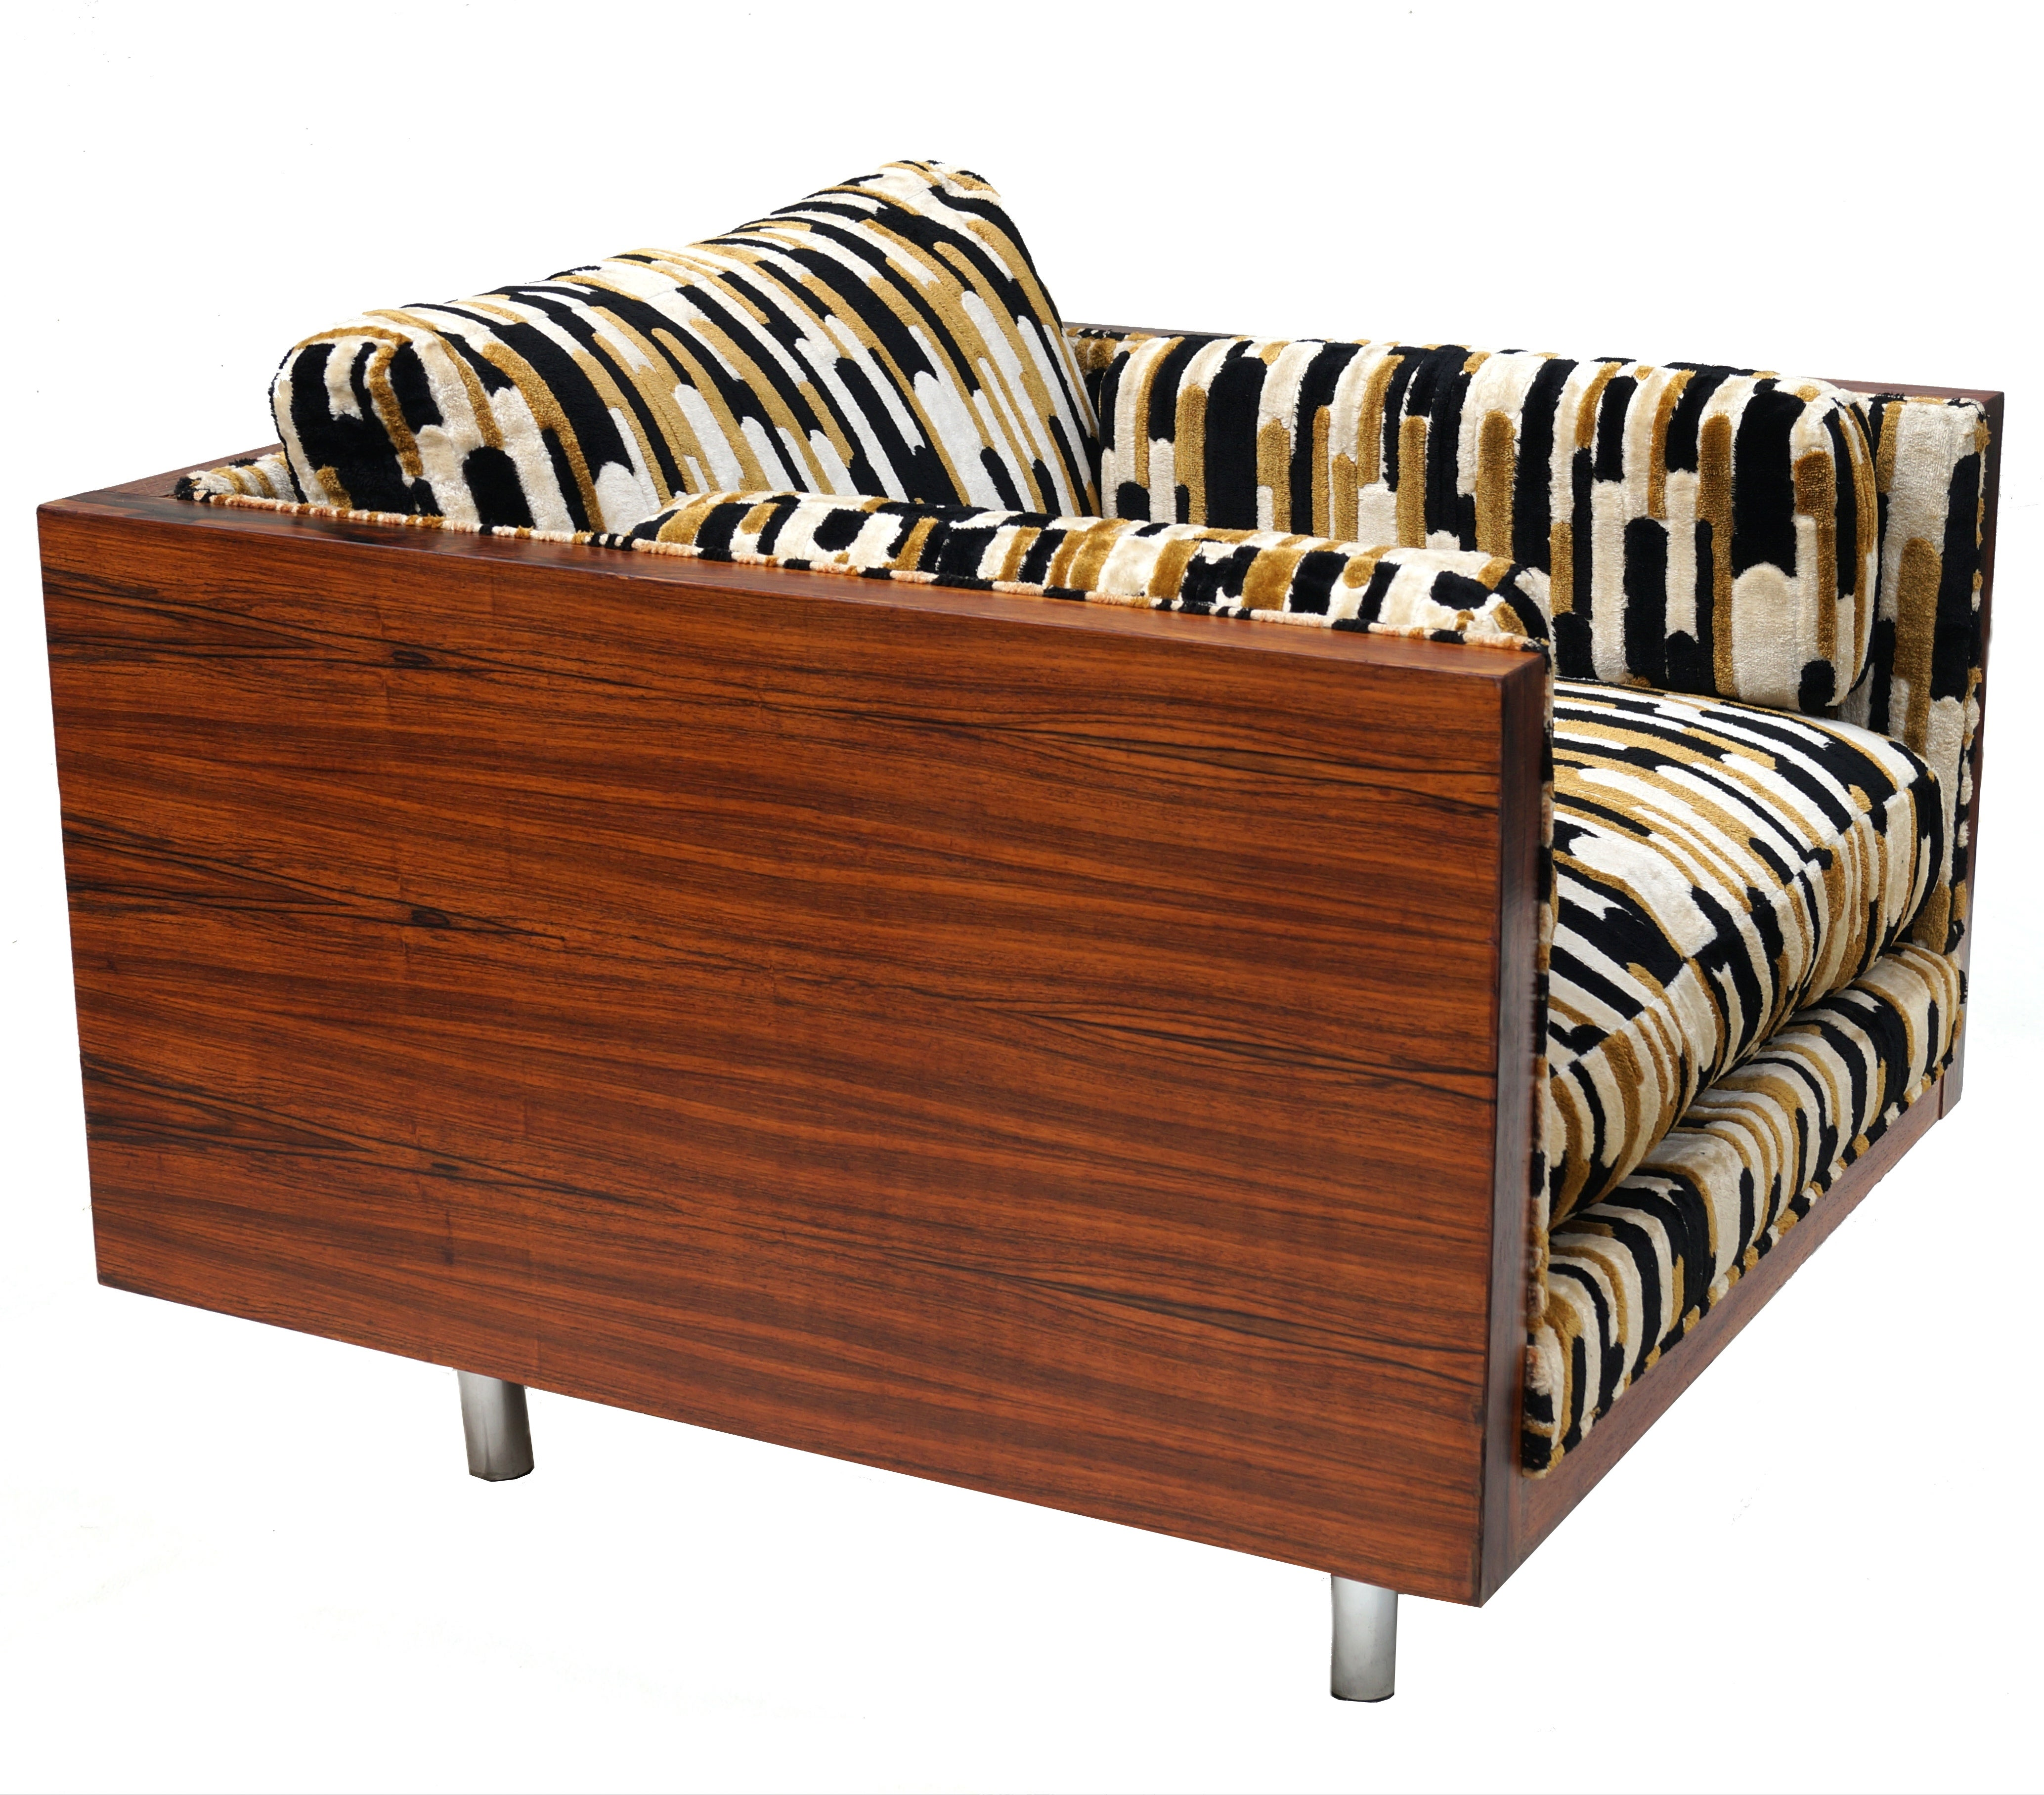 Stupendous Mid Century Modern Rosewood Lounge Cube Chair Manner Of Milo Baughman Onthecornerstone Fun Painted Chair Ideas Images Onthecornerstoneorg